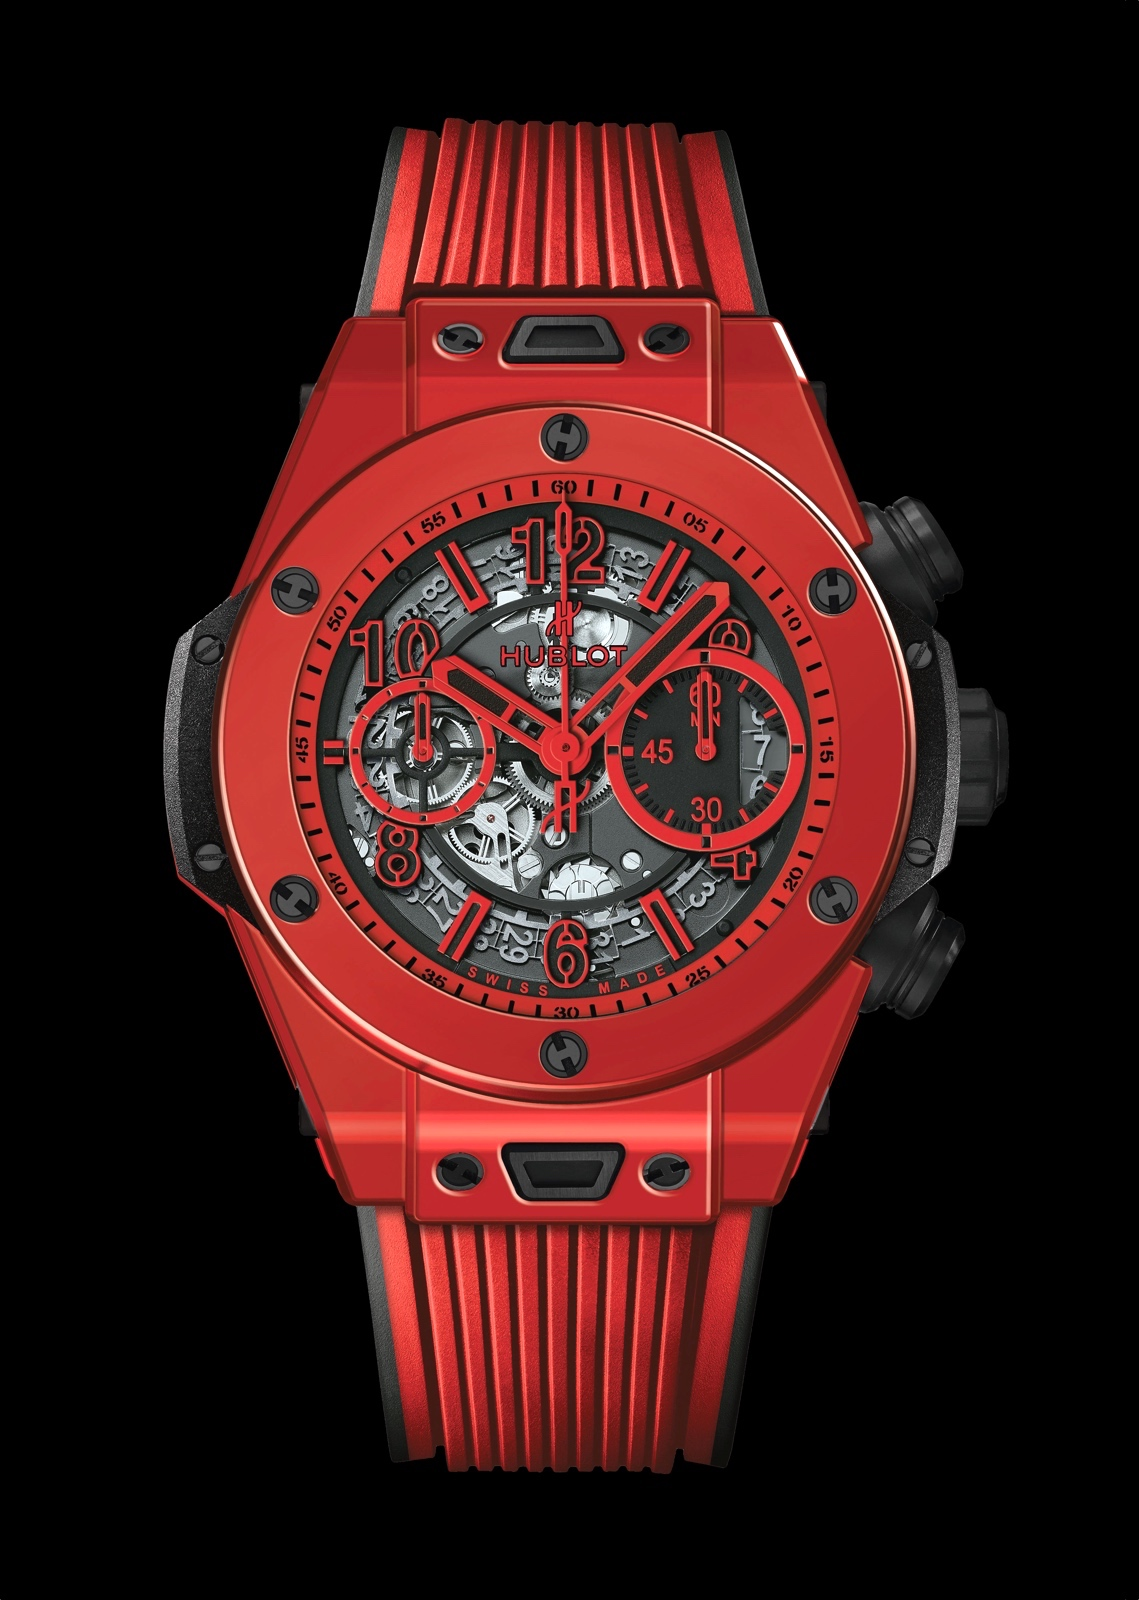 De 45,5 mm Hublot Big Bang Unico Red Magic is bepaald geen grauw muurbloempje